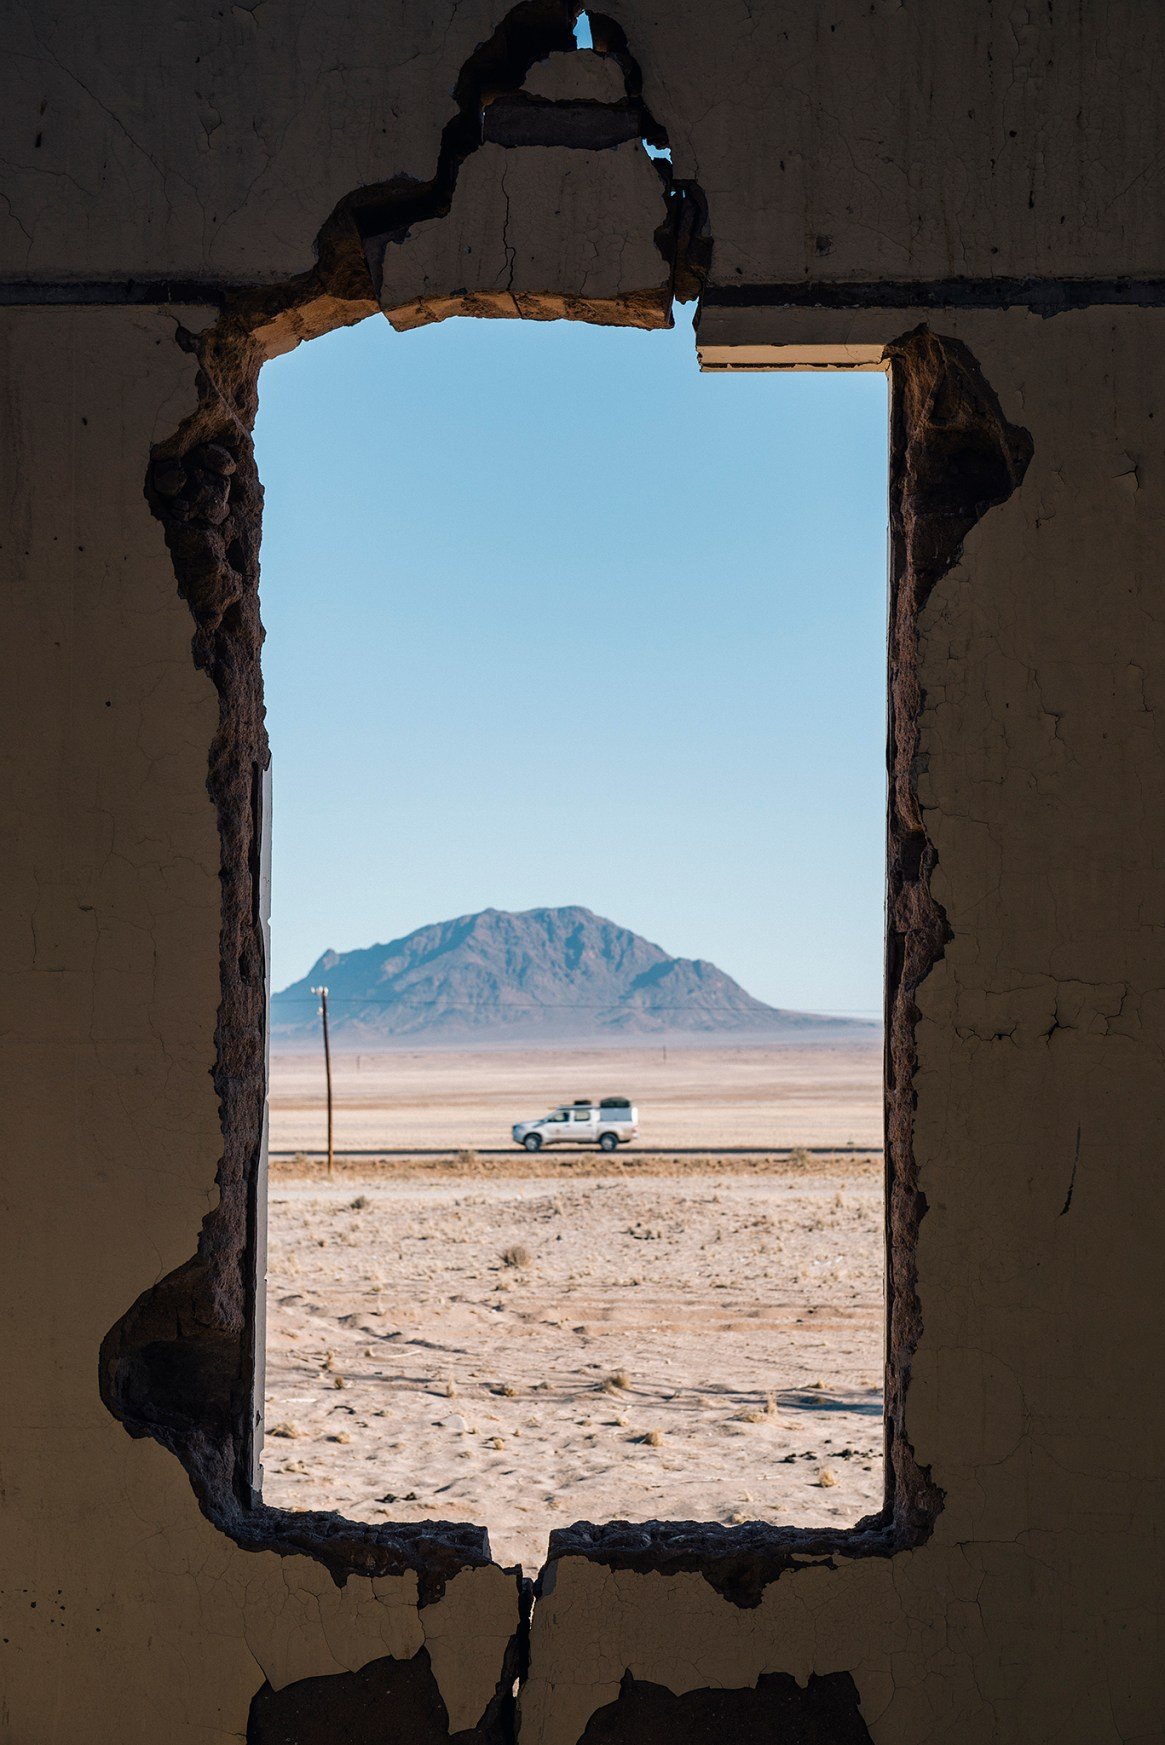 Shot of a car driving through the semi-desert with blue sky and mountains as a backdrop, seen through the creaking window of a derelict building at Garub, Namibia